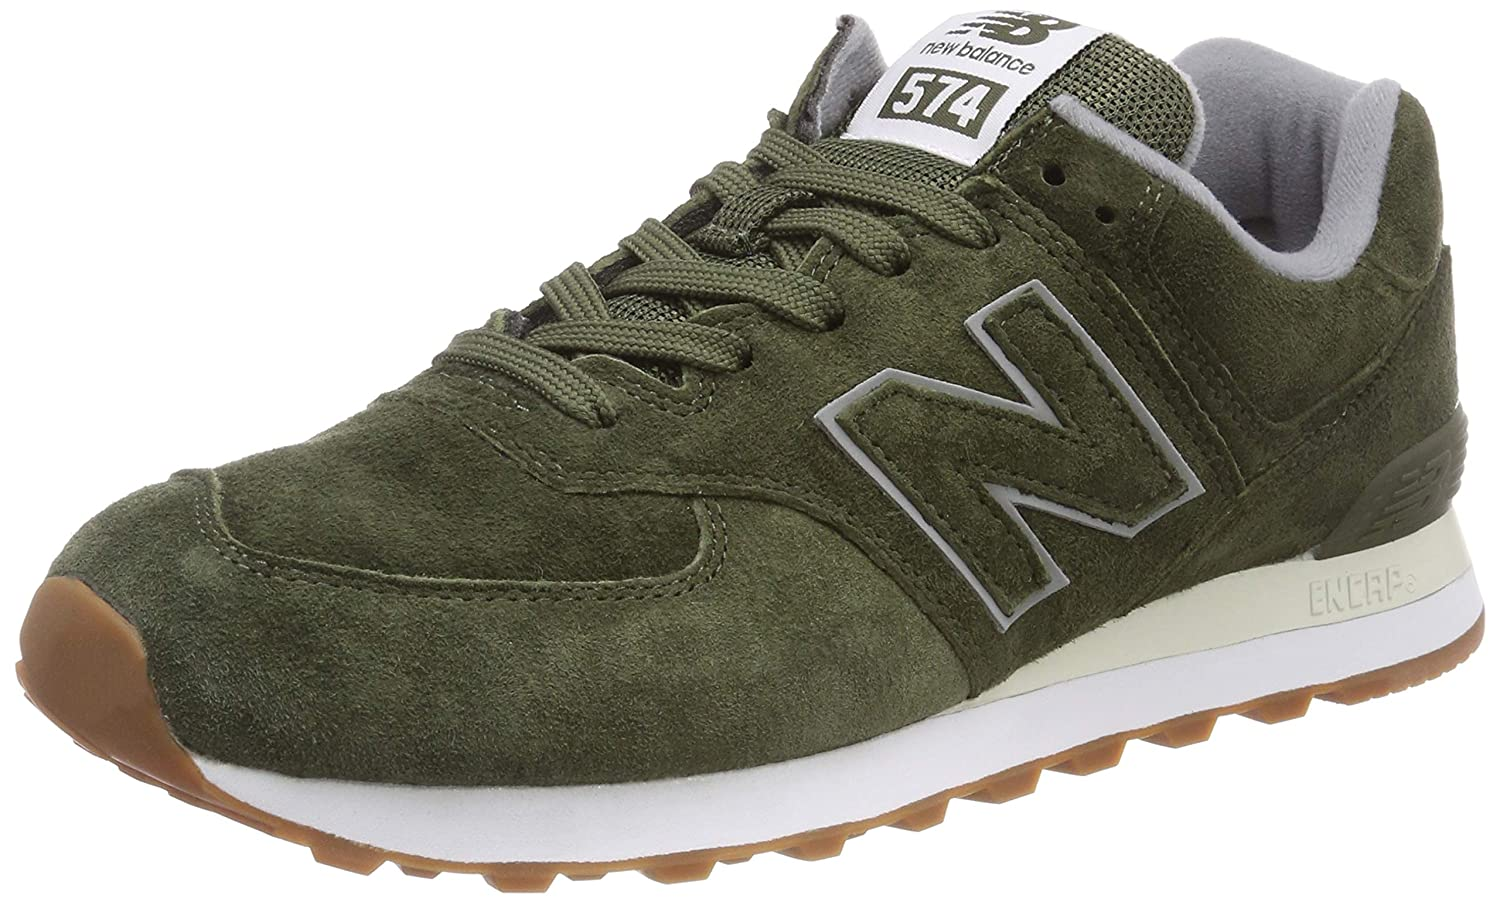 New Herren Balance Herren New Ml574E Sneaker, Grün (Dark Covert Grün/Dark Covert Grün Epb) f173cc